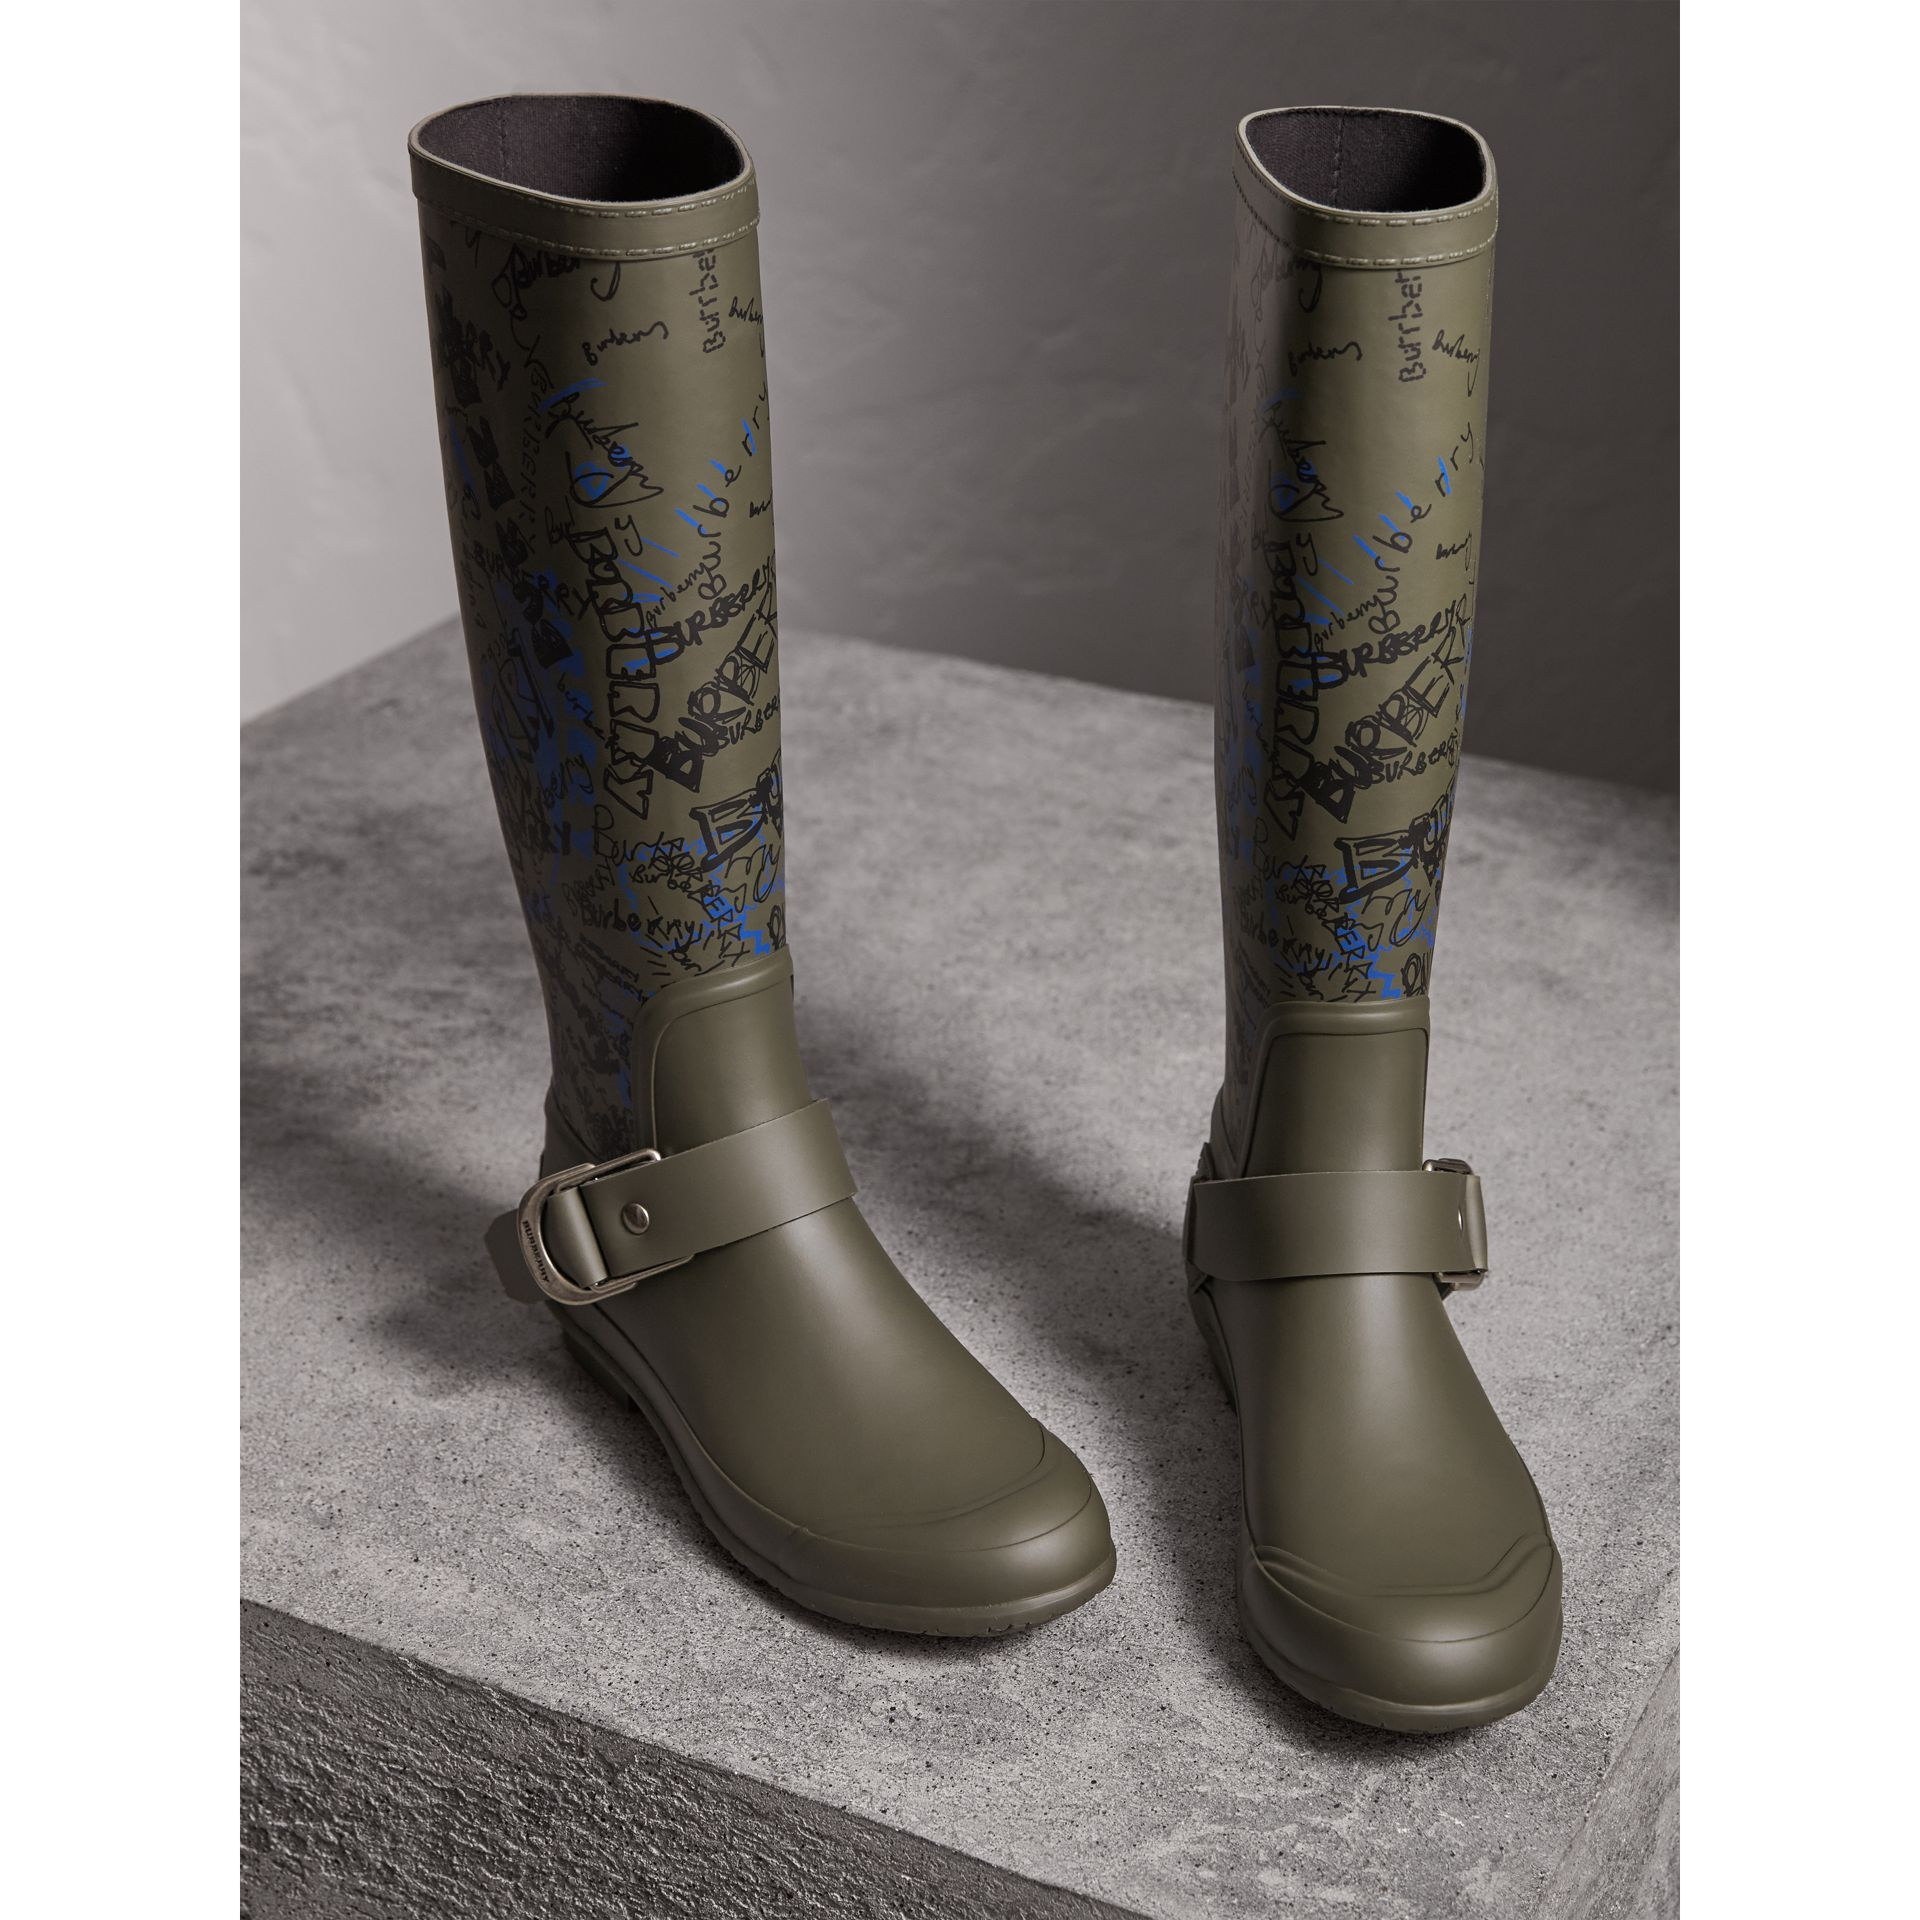 Doodle Print Rubber Rain Boots in Military Green - Women | Burberry Australia - gallery image 4